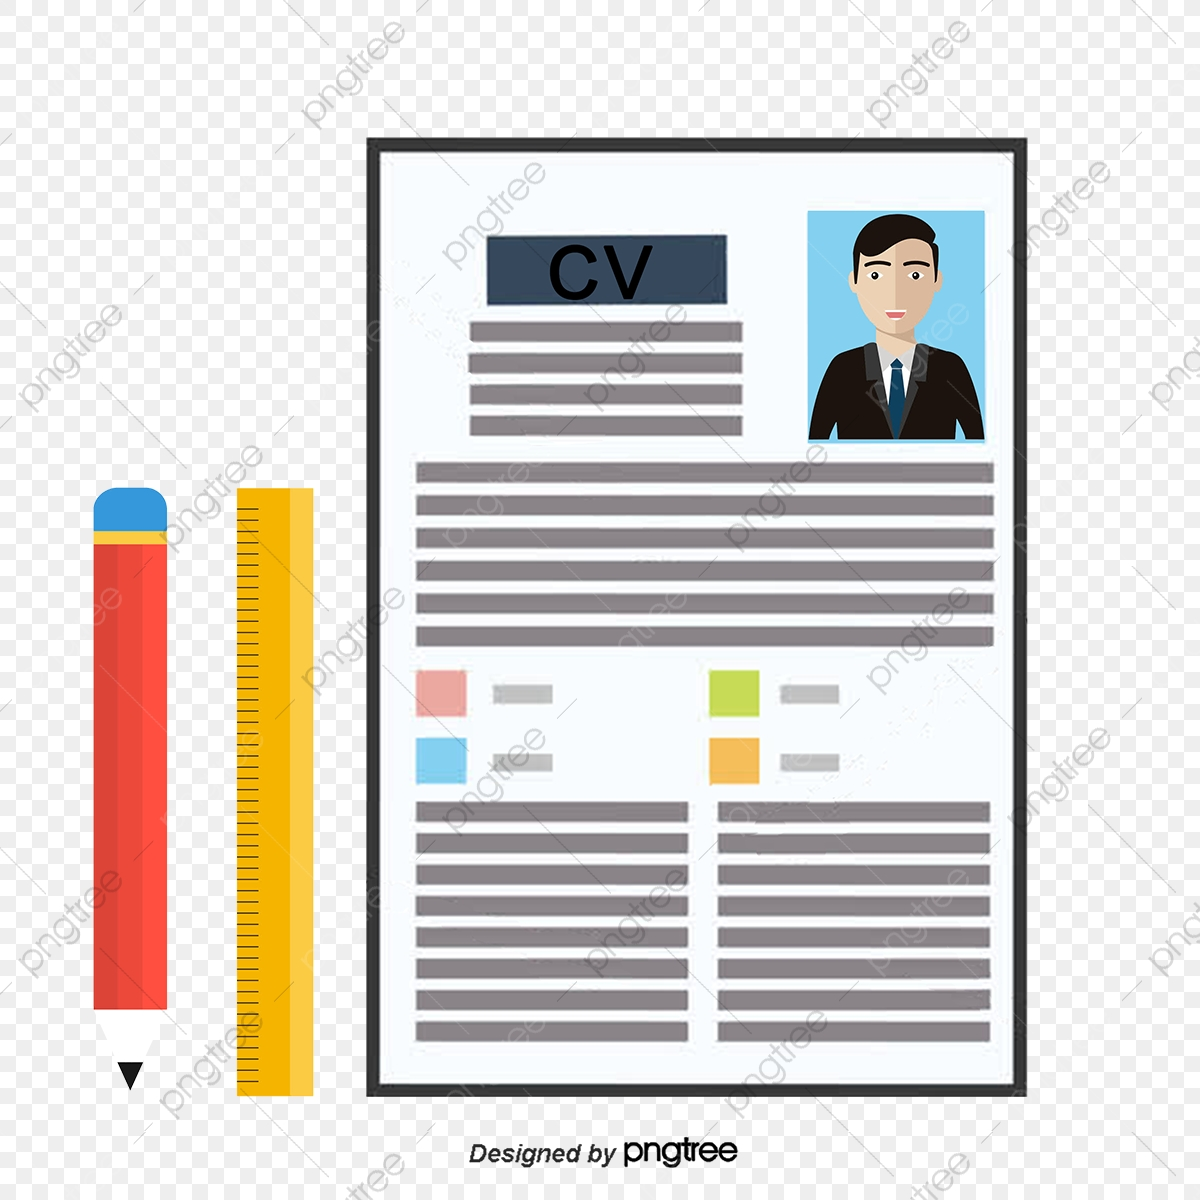 candidates cv photo ruler pencil png transparent clipart image and psd file for free download https pngtree com freepng candidates cv 1662398 html